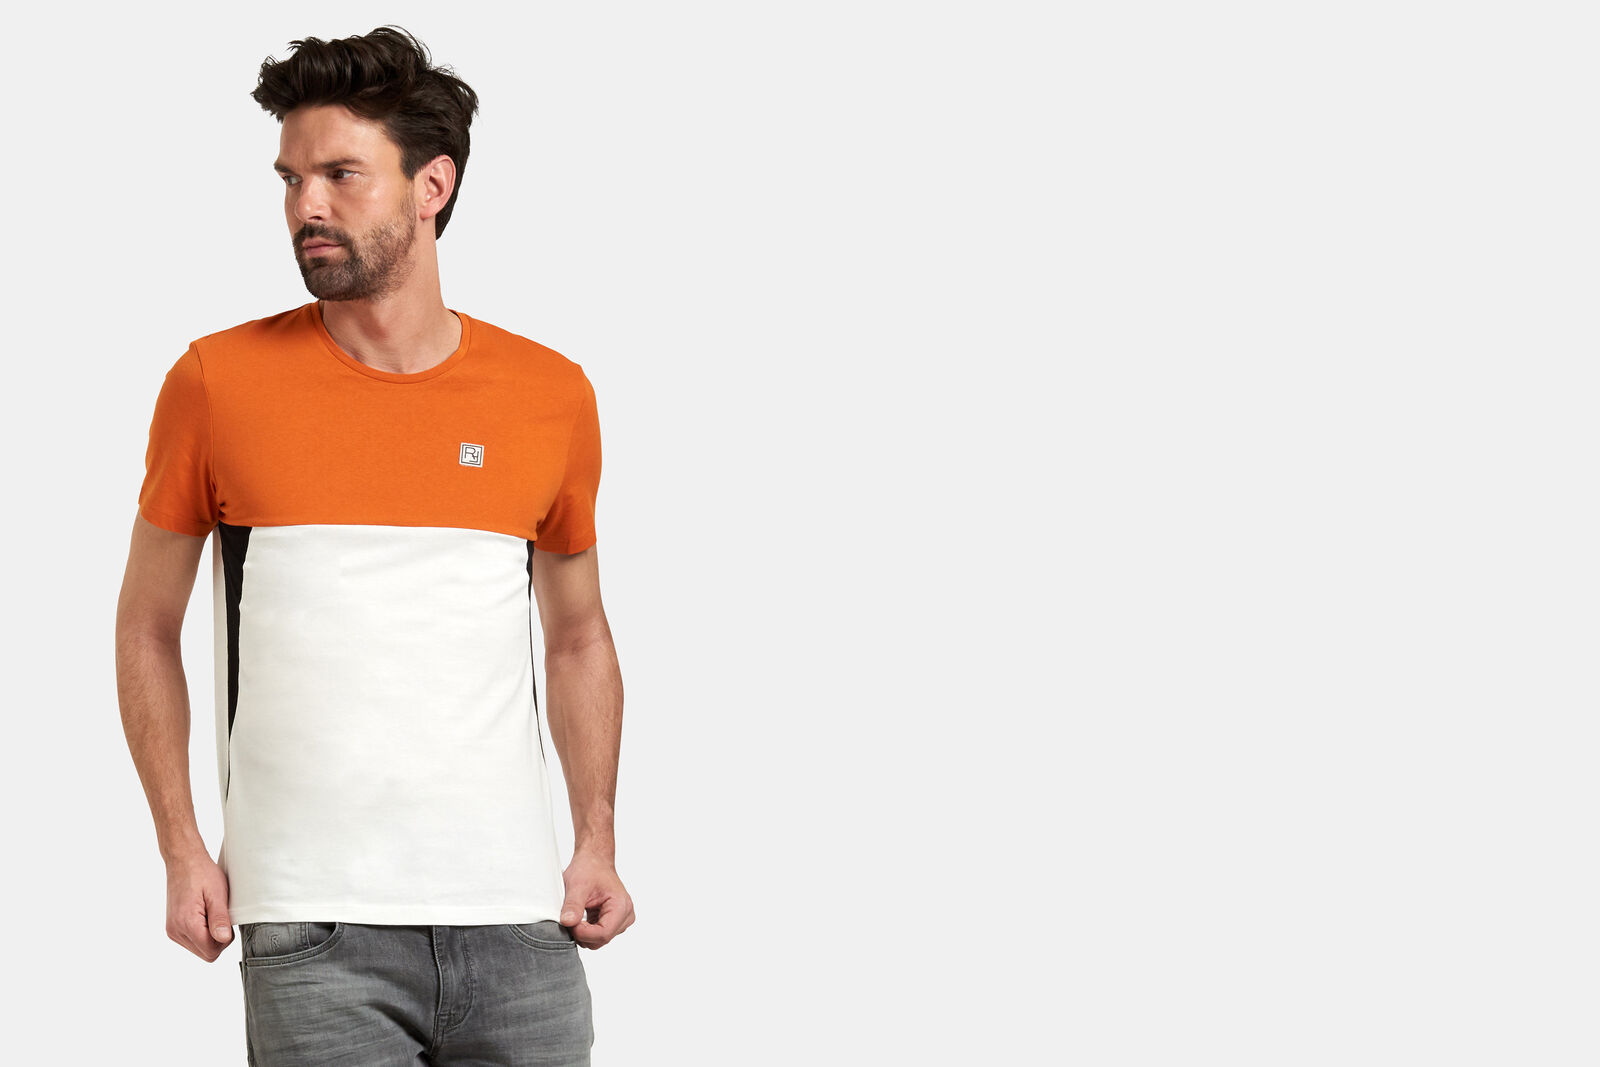 Toin T-shirt